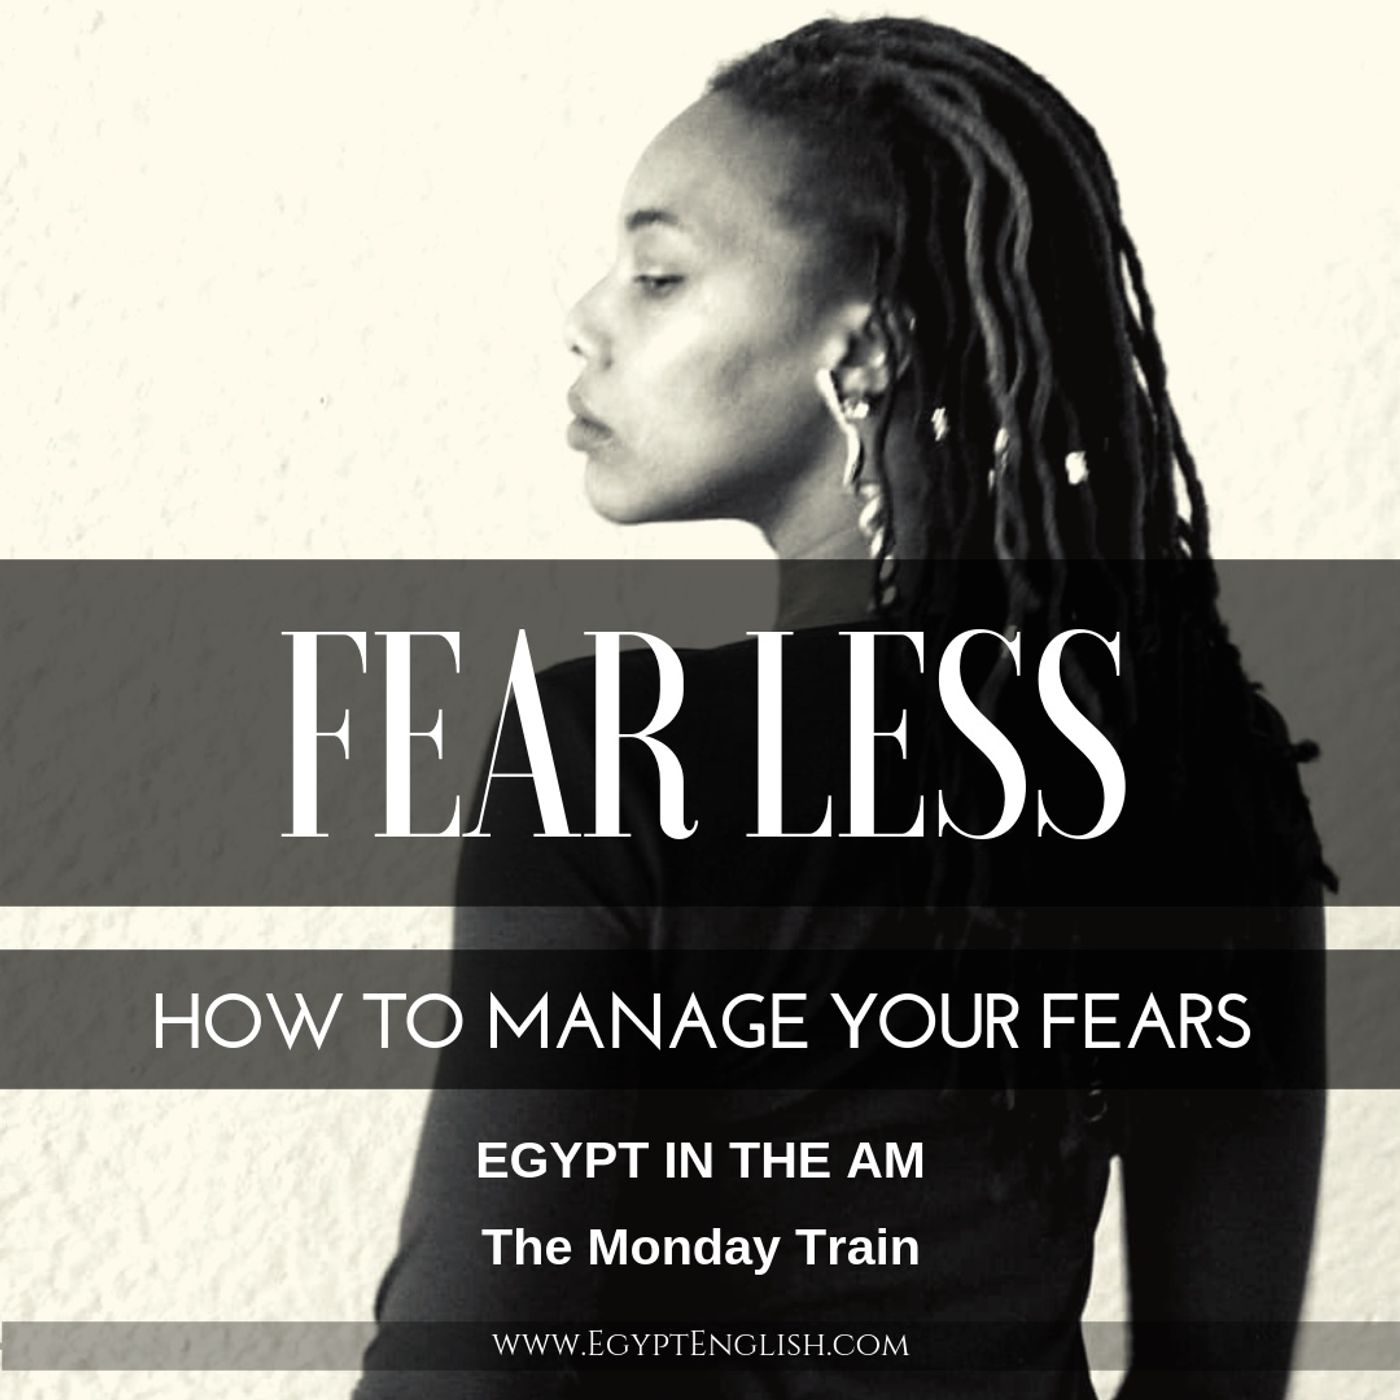 #003 How to Manage Your Fears